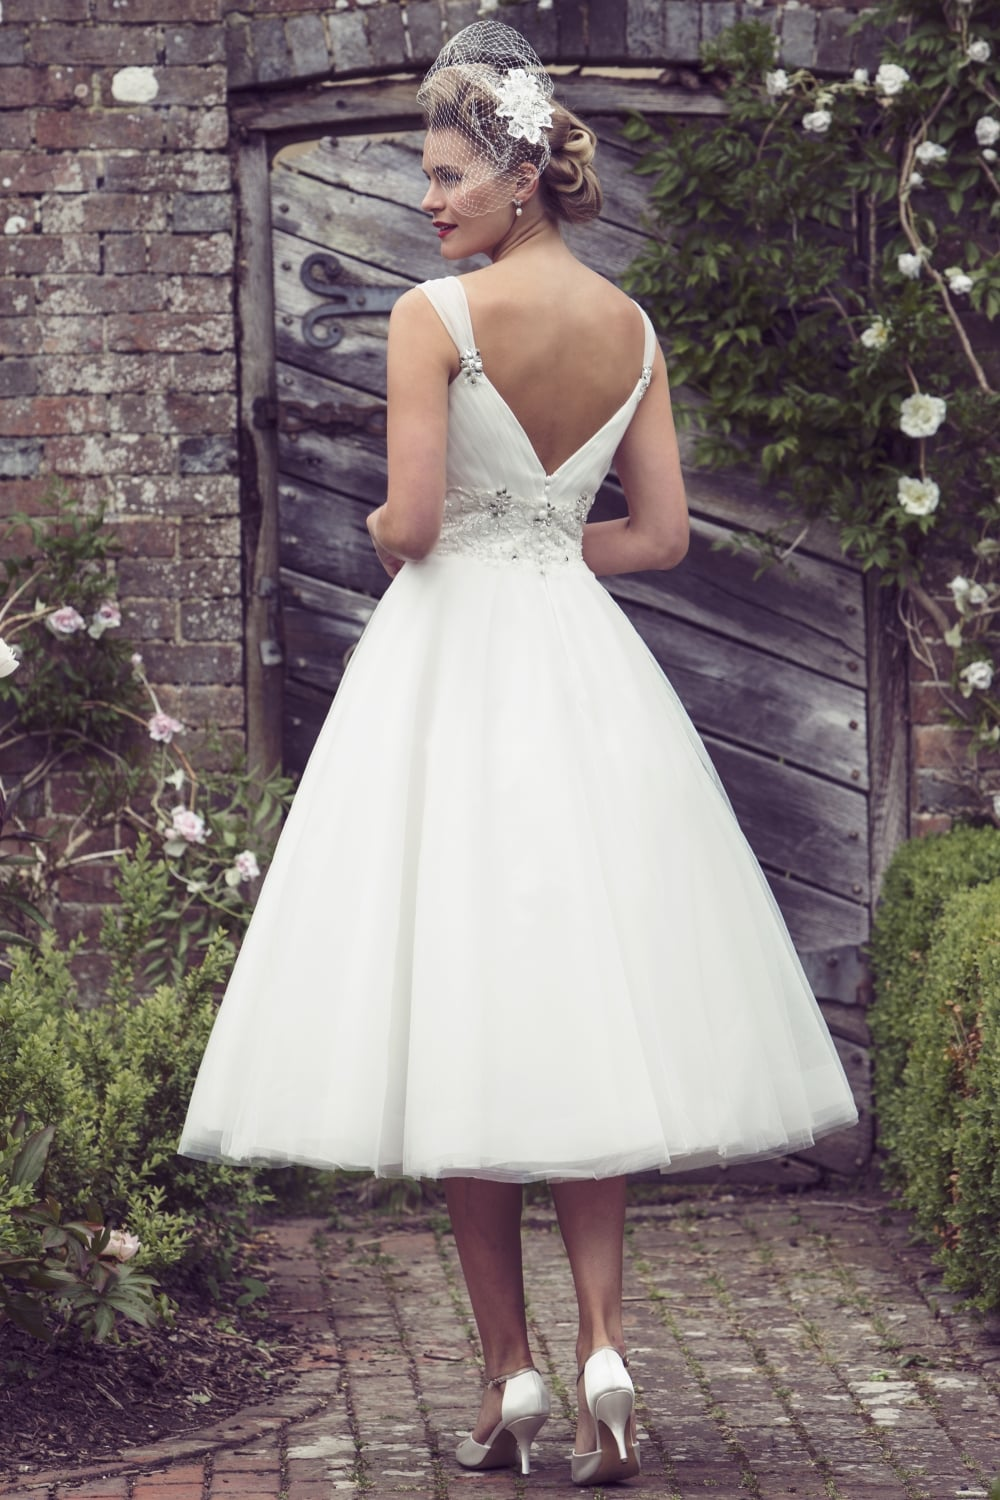 Discontinued Design Now In Sample Sale Etta 1950s Tea Length Short Wedding Dress